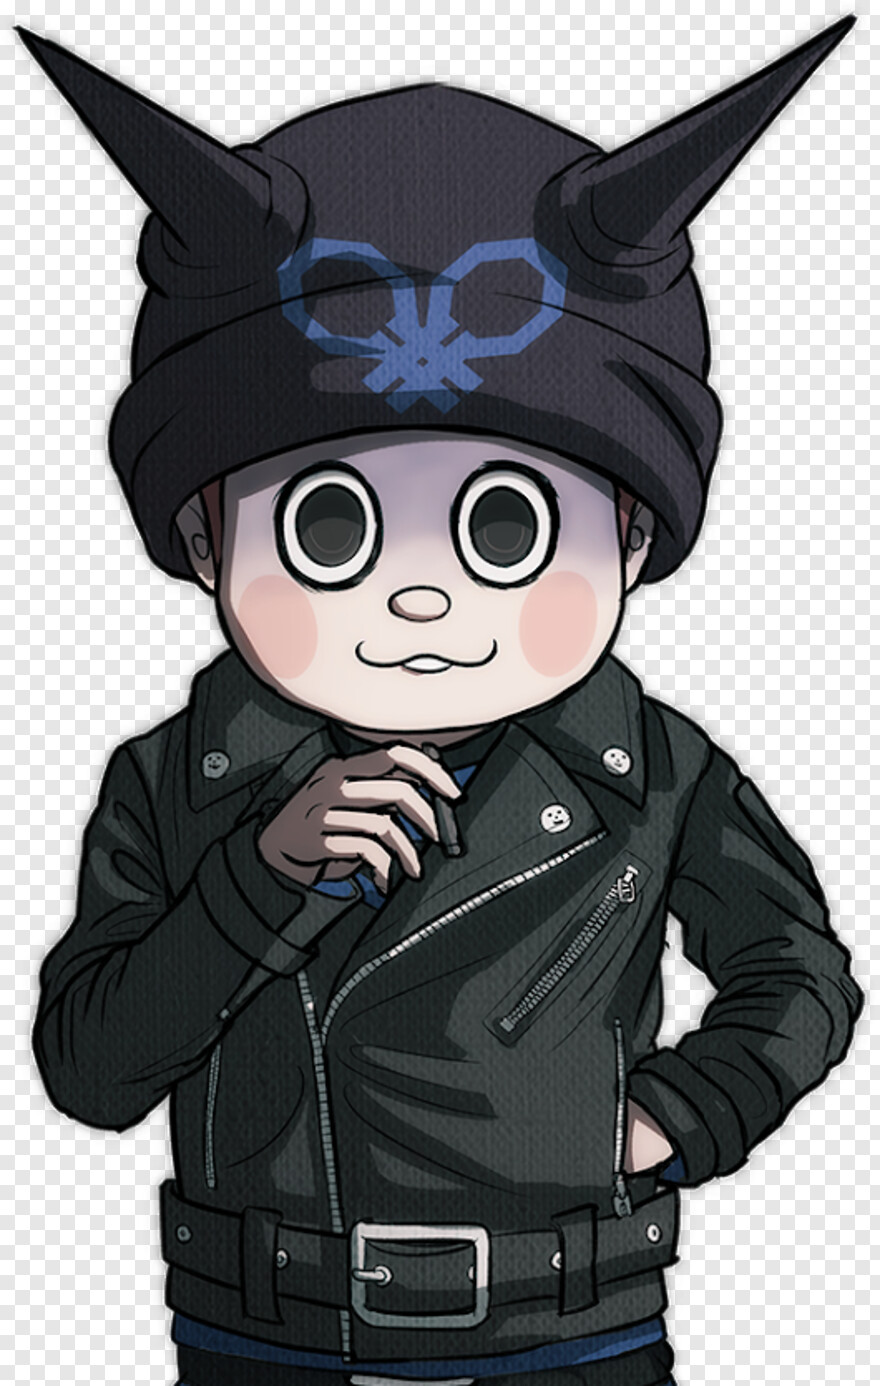 Dangan Ronpa Logo Ryoma Hoshi Sprite Edits Png Download 530x835 8116308 Png Image Pngjoy Read hoshi x fem!reader from the story danganronpa oneshots by saiharaismychild (wigs don't like me:() with 3,020 reads. ryoma hoshi sprite edits png download